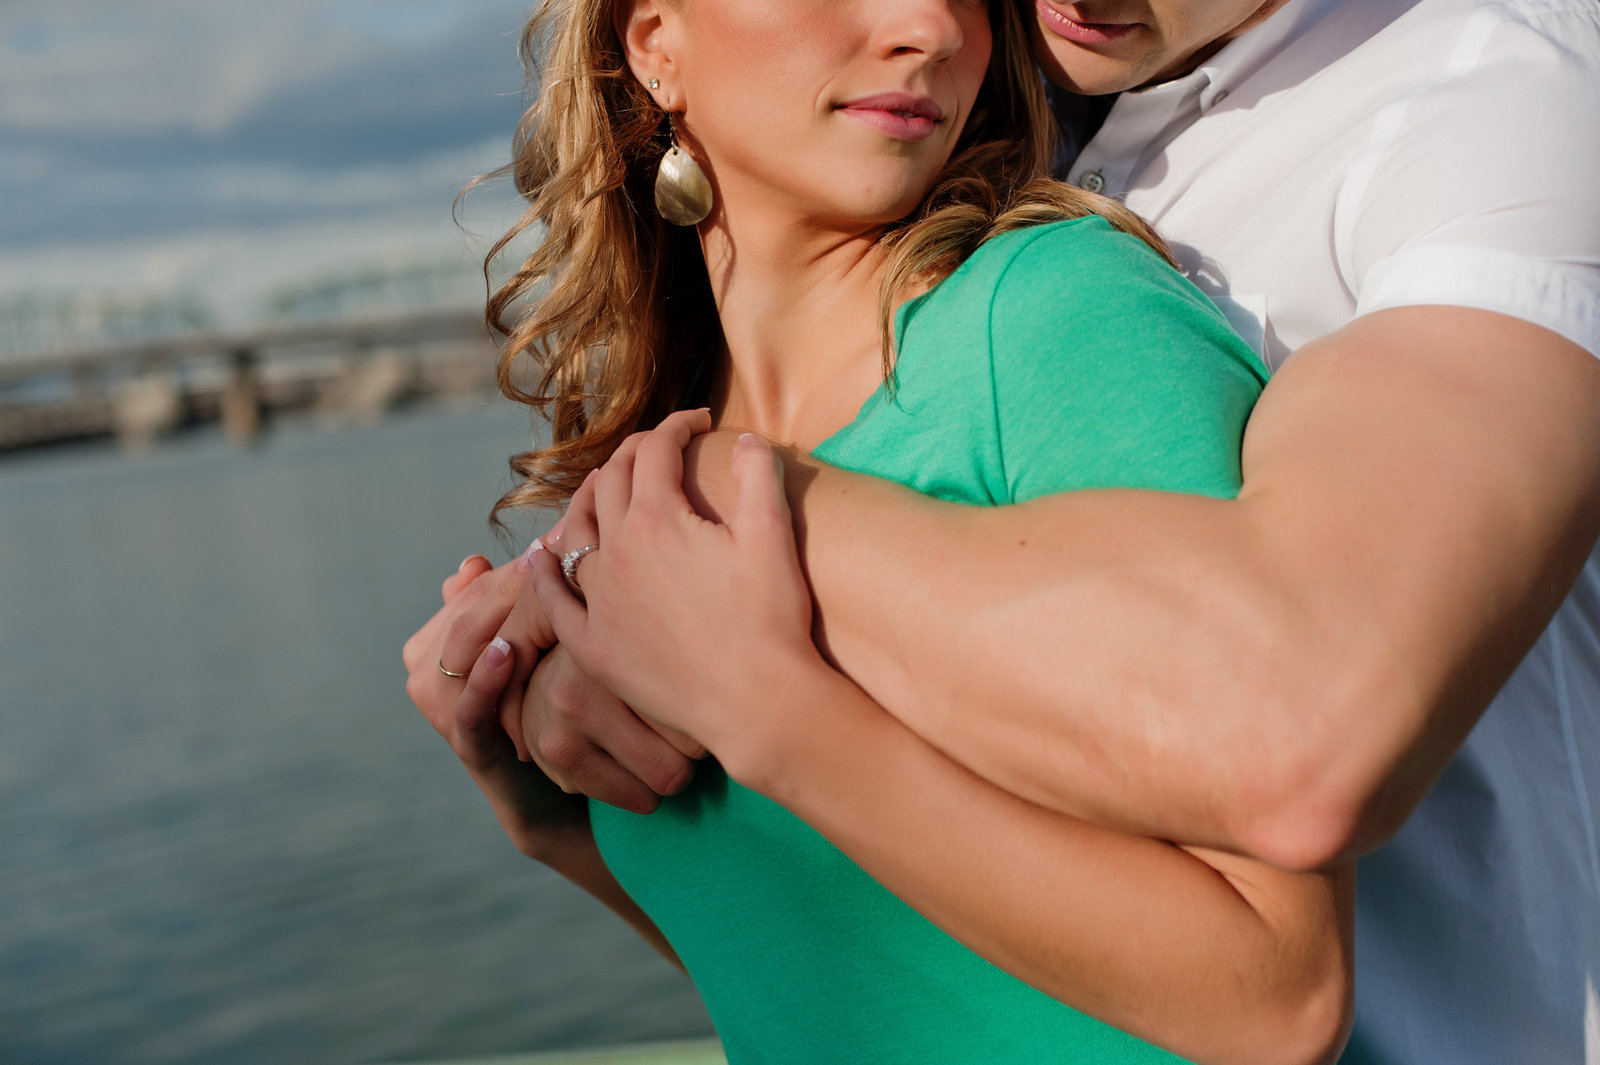 a guy with muscles embraces his fiance